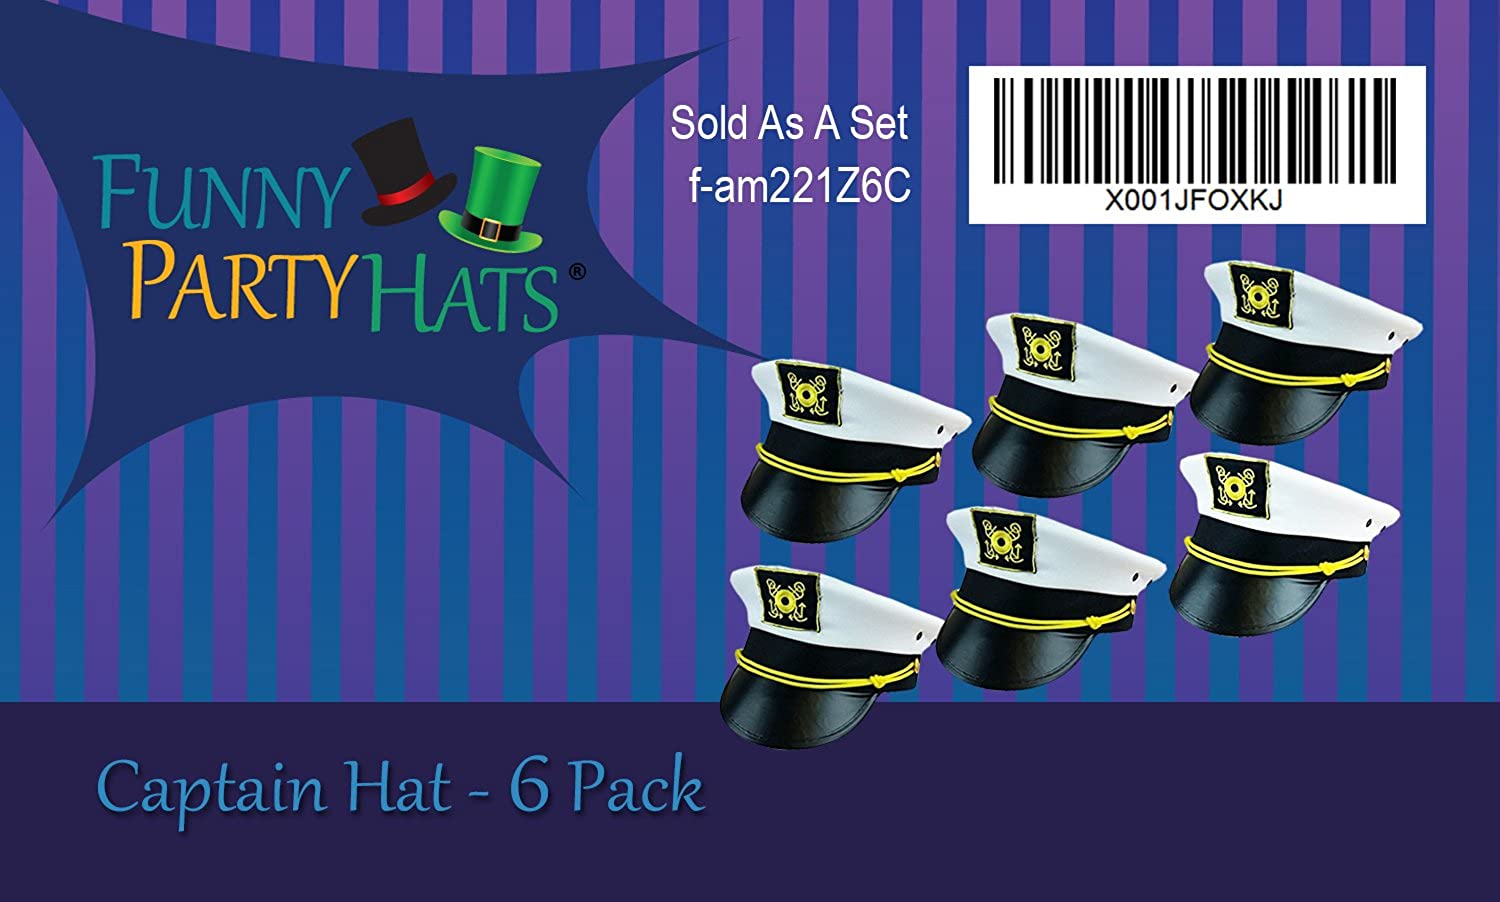 Yacht Captain Hat Sailor Hats for Men Funny Party Hats Captain Hats